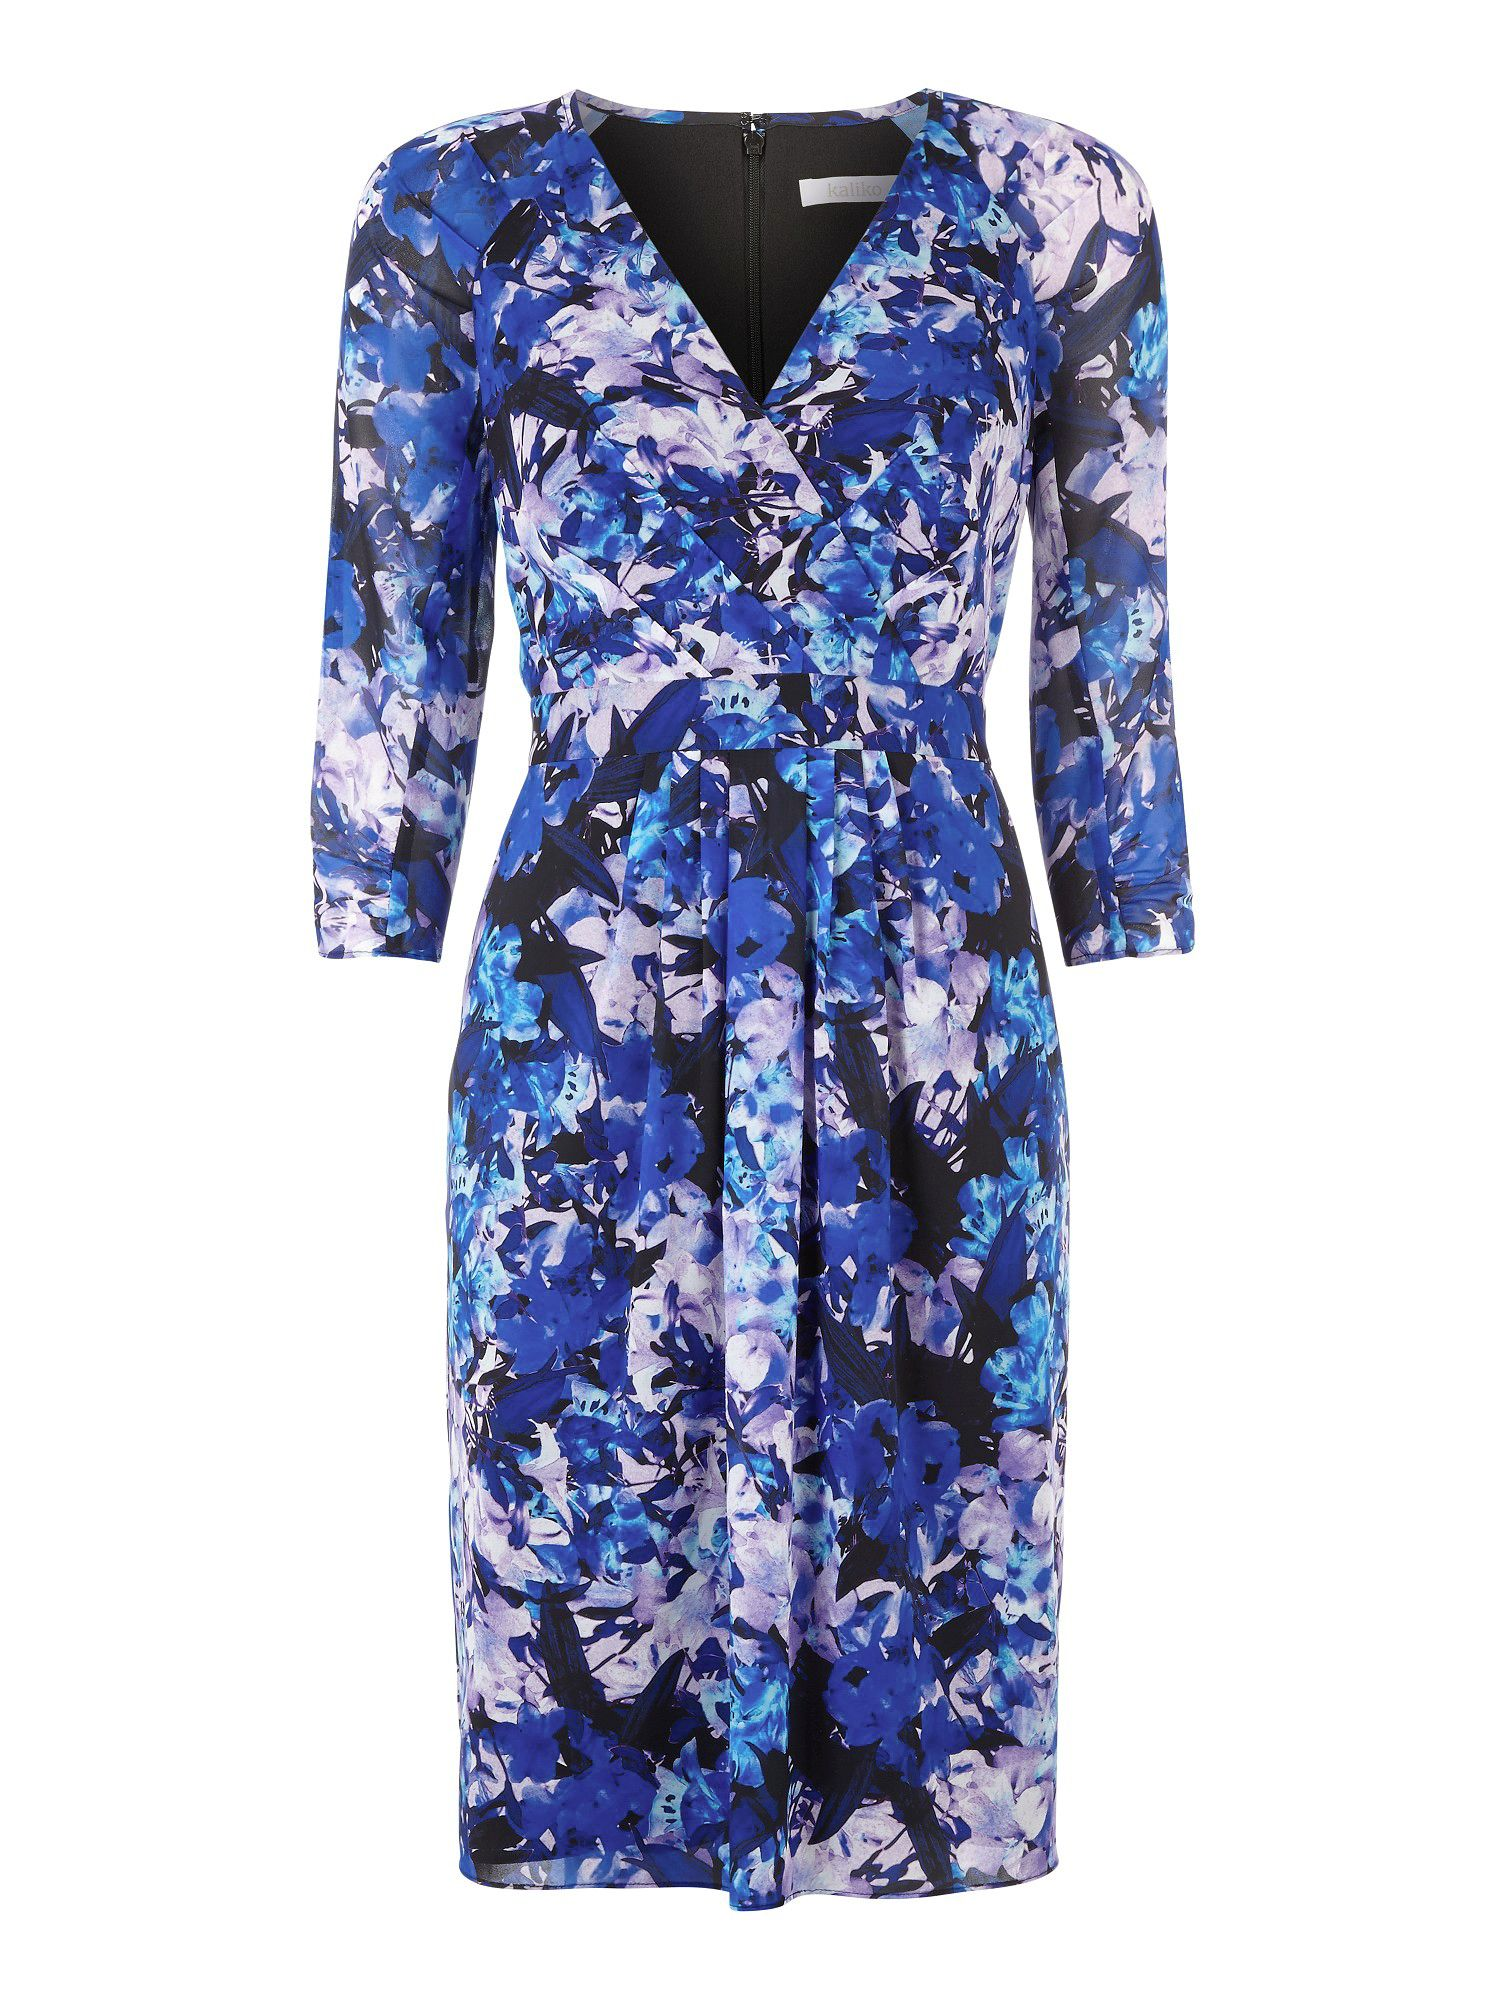 Honour print wrap dress